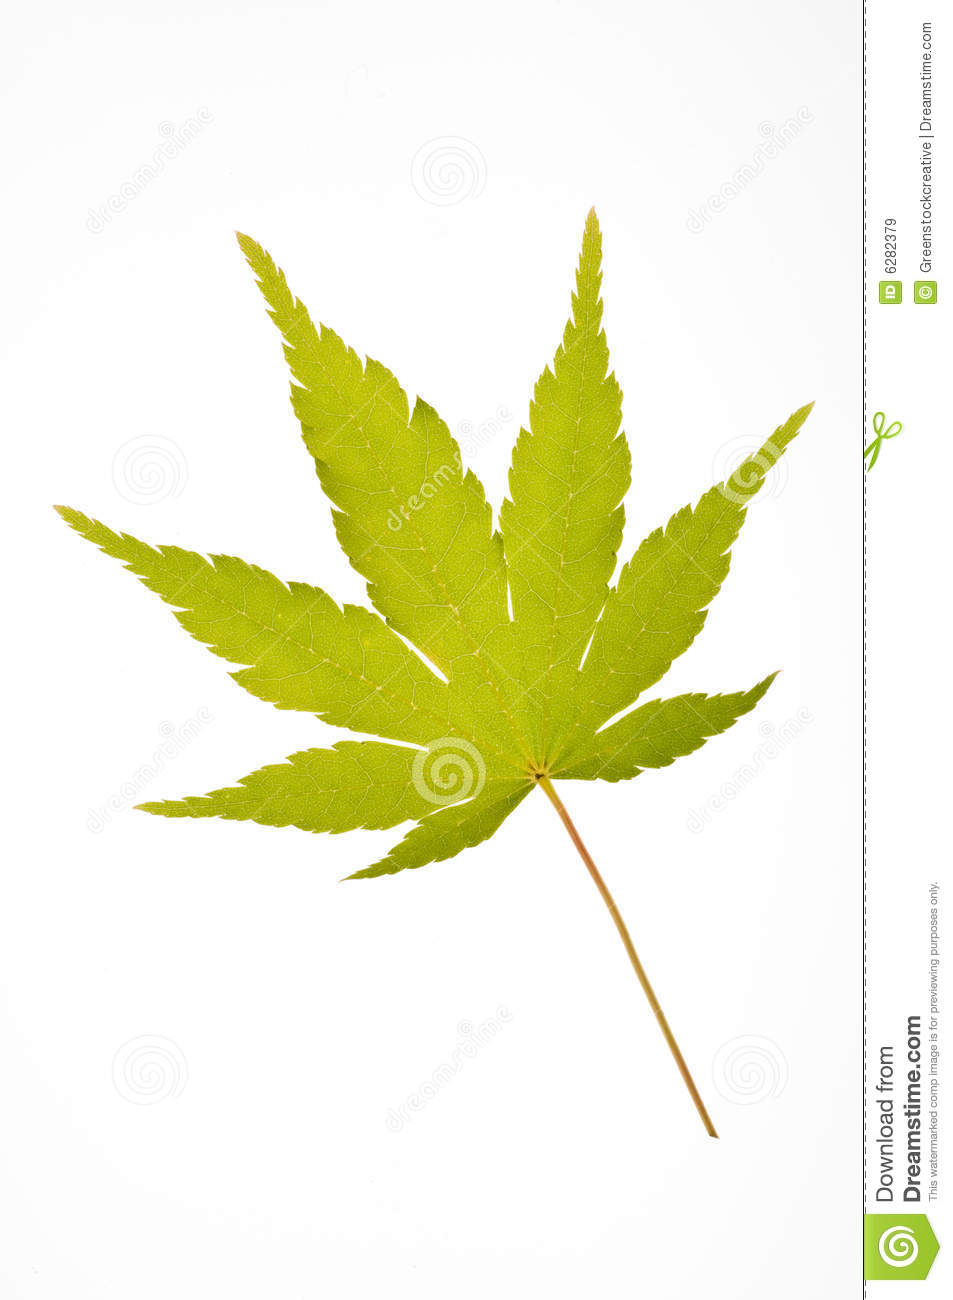 Japanese Maple Leaf Royalty Free Stock Images Image 6282379